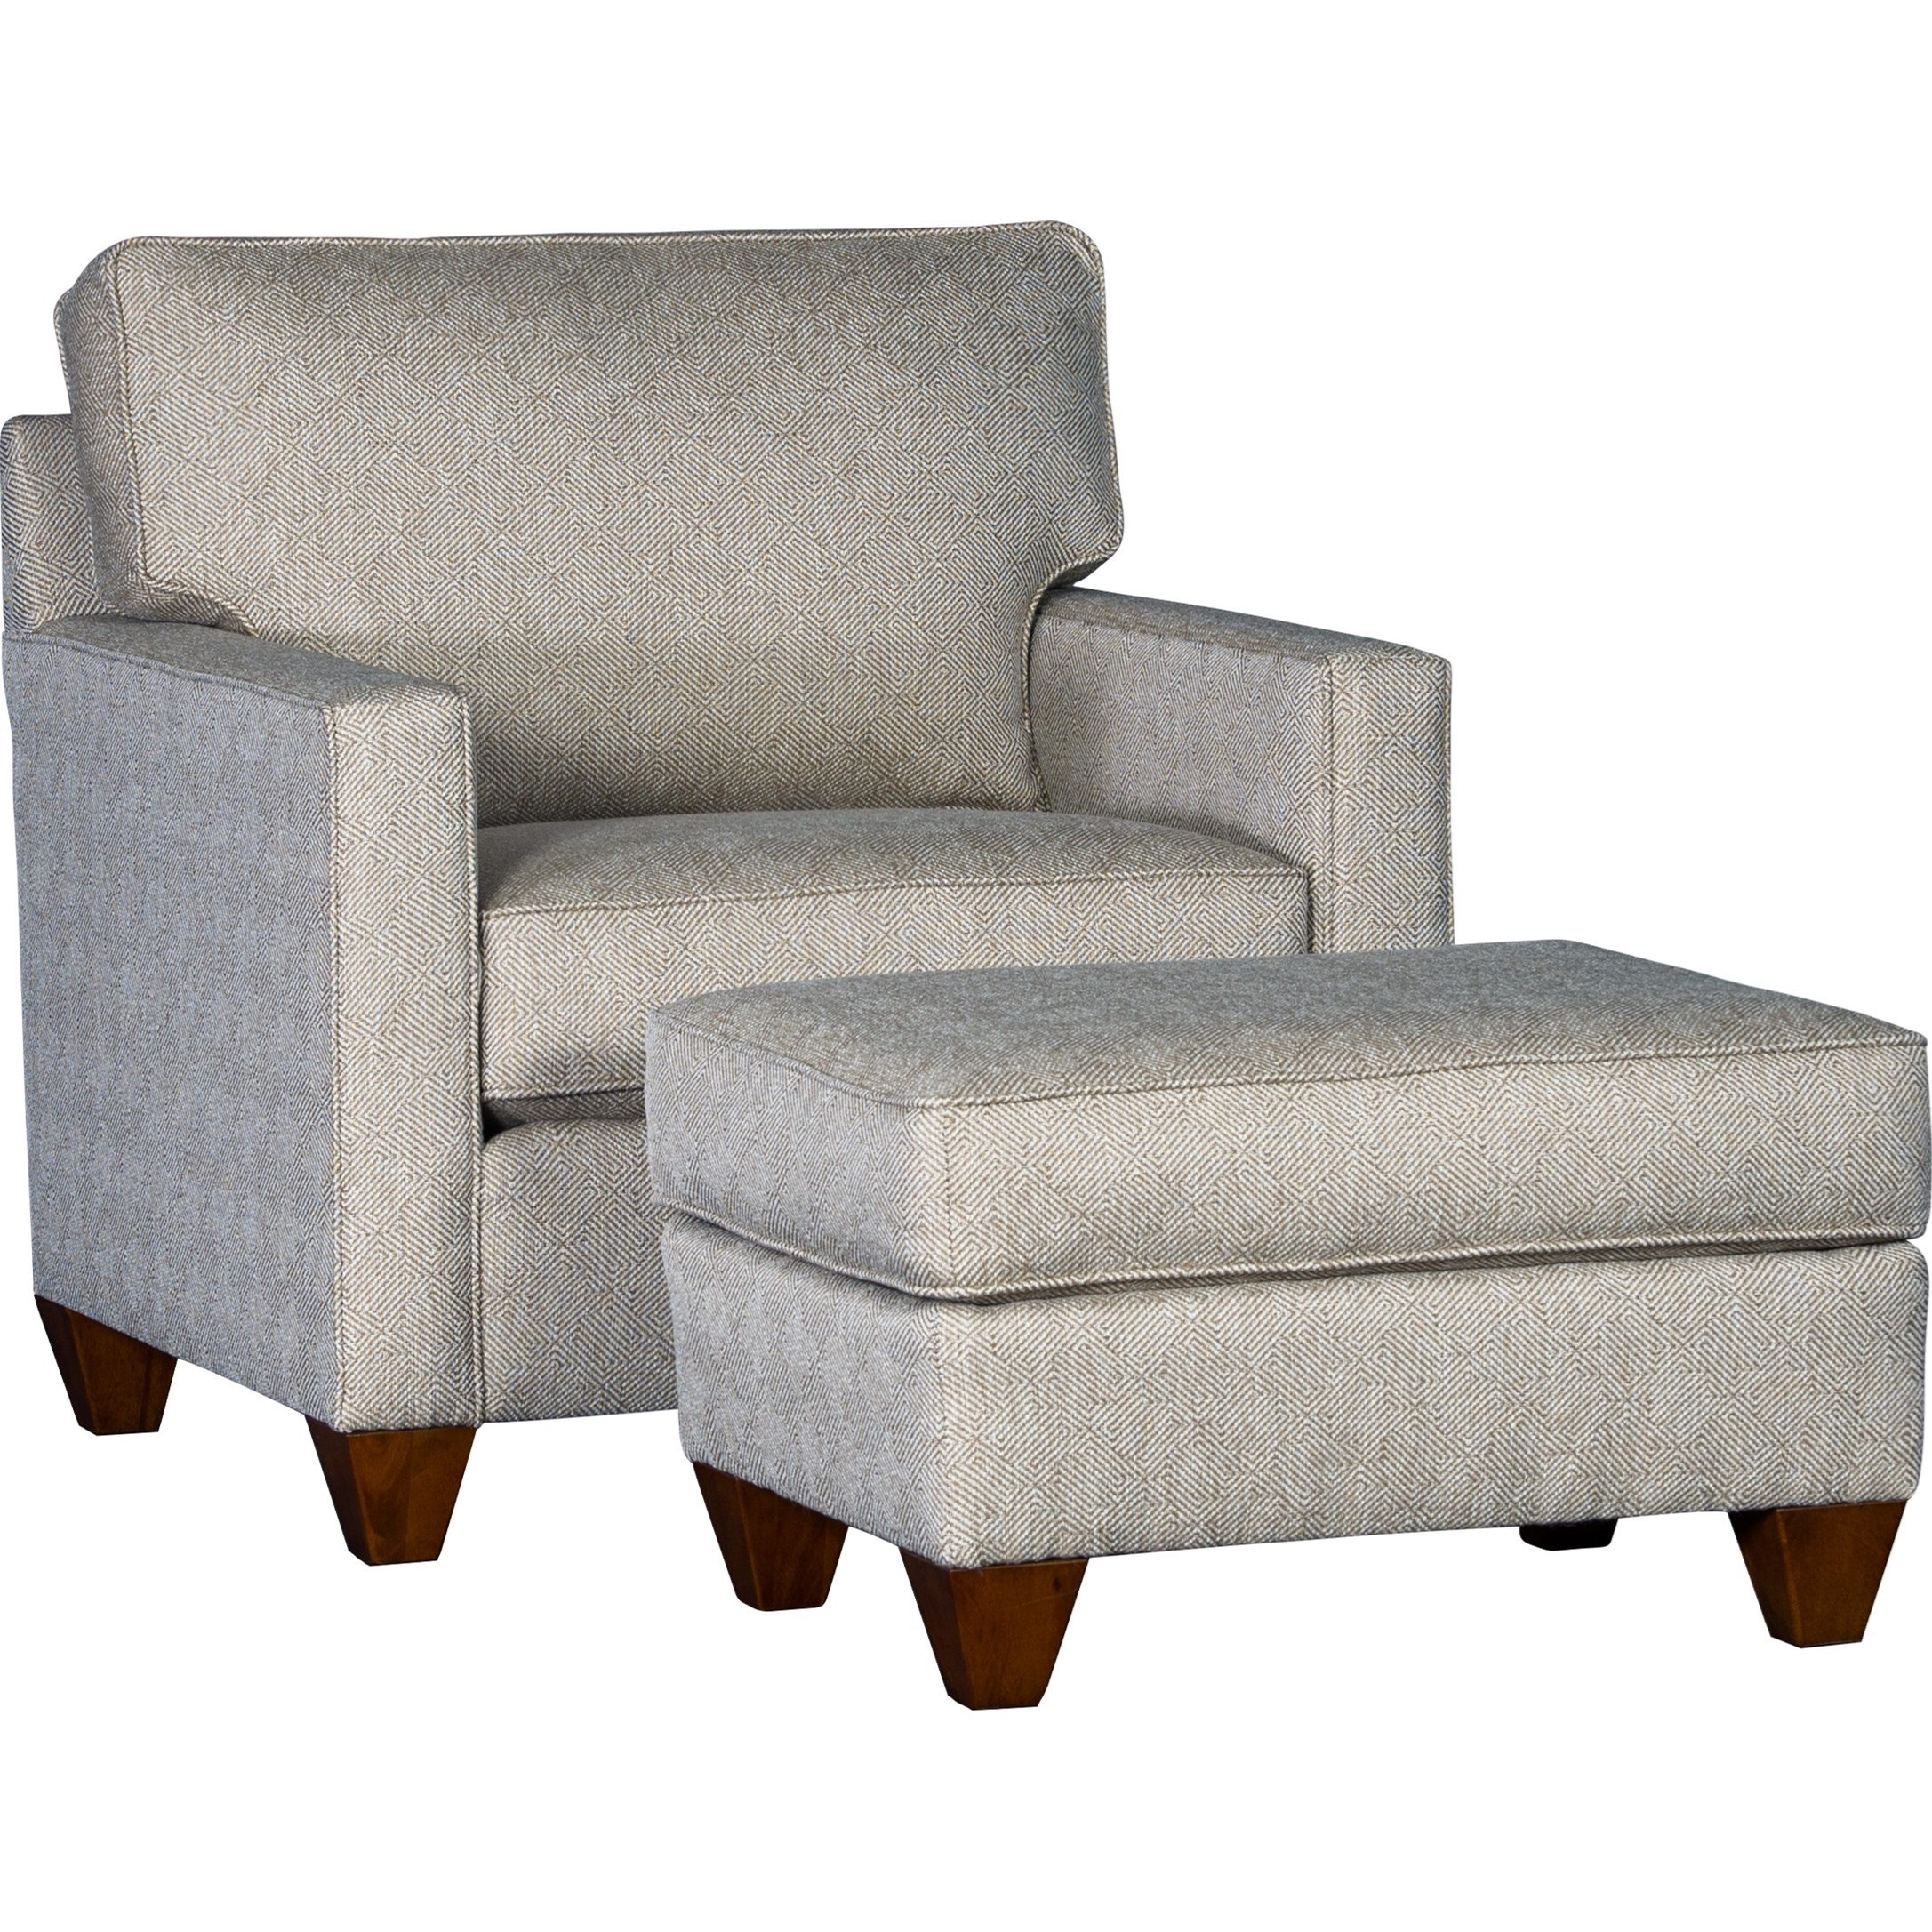 3830 Chair and Ottoman by Mayo at Pedigo Furniture